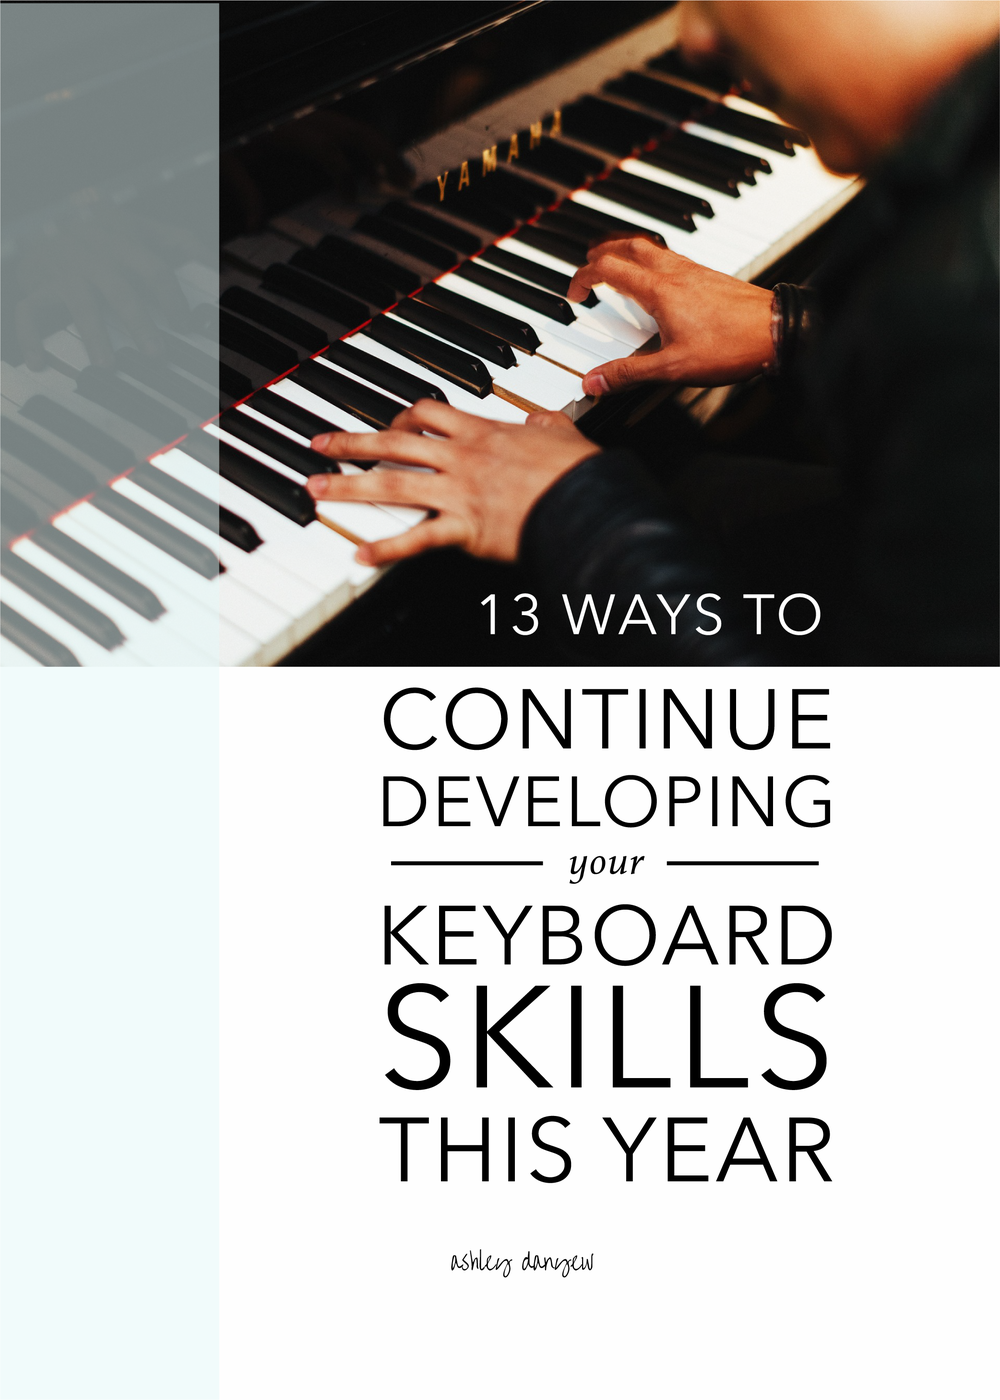 13 Ways to Continue Developing Your Keyboard Skills This Year